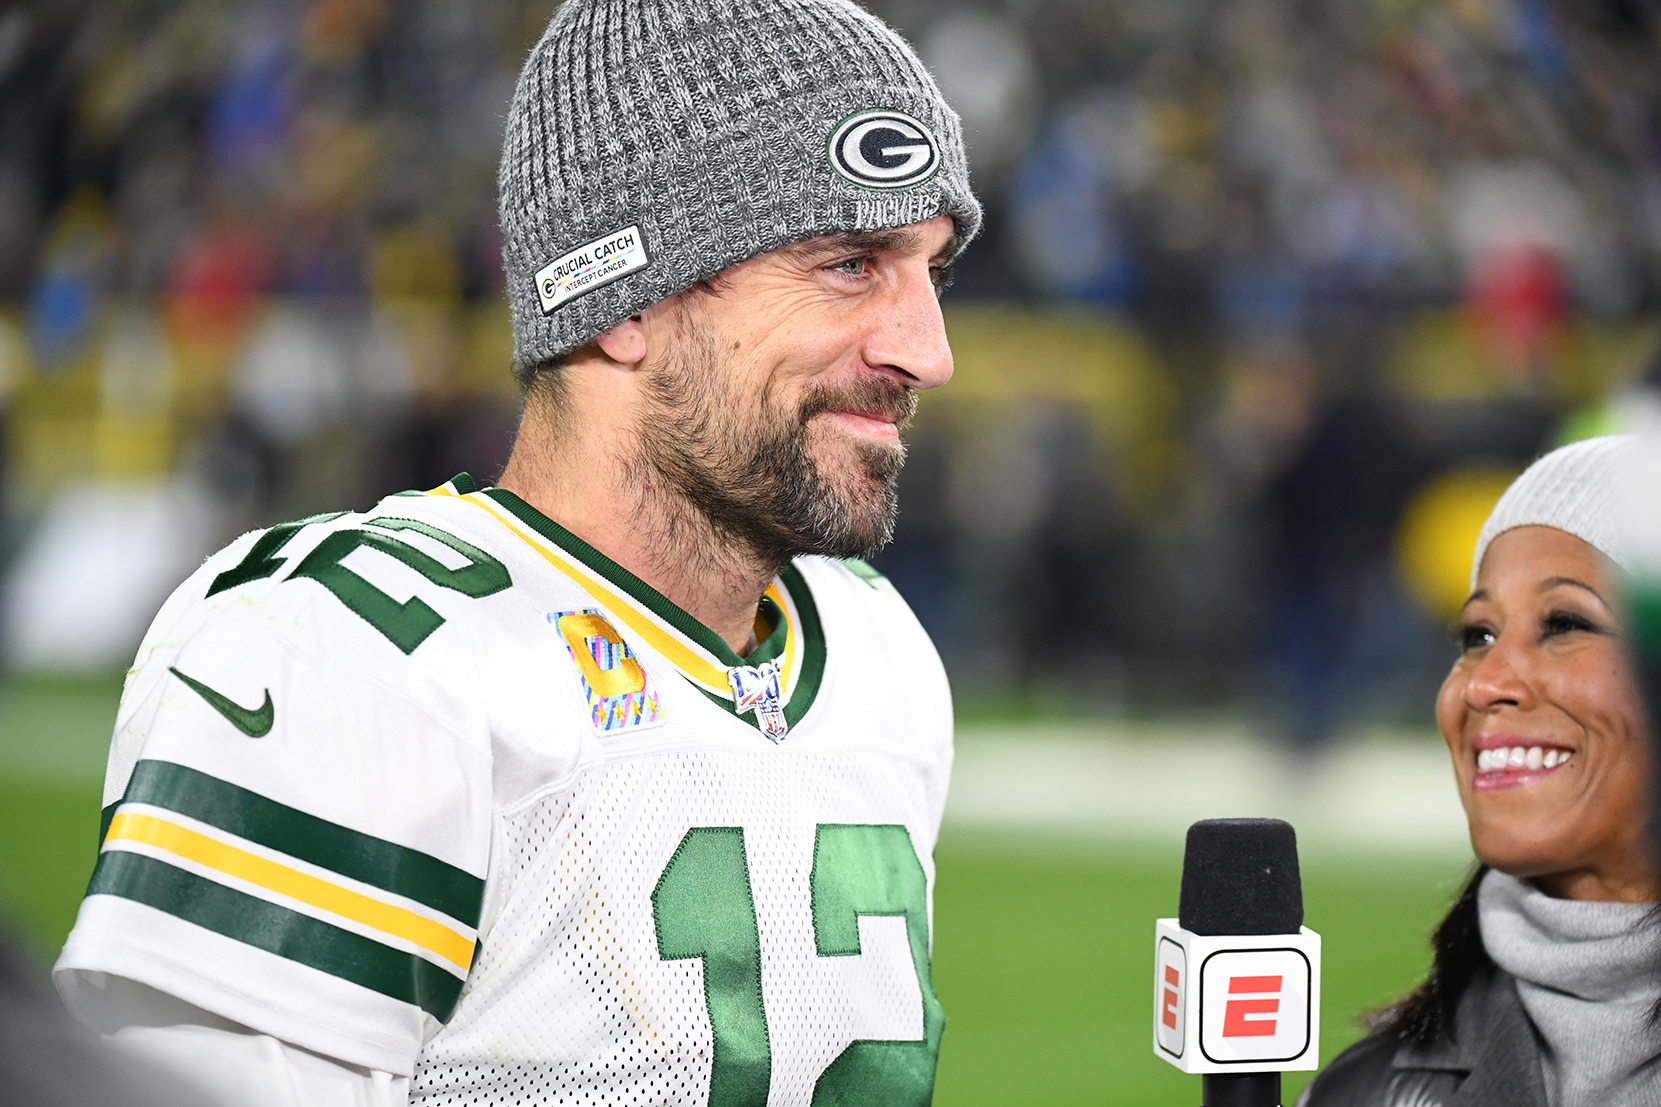 Lions Packers Hits Four Year Week 6 High On Espn Sports Media Watch